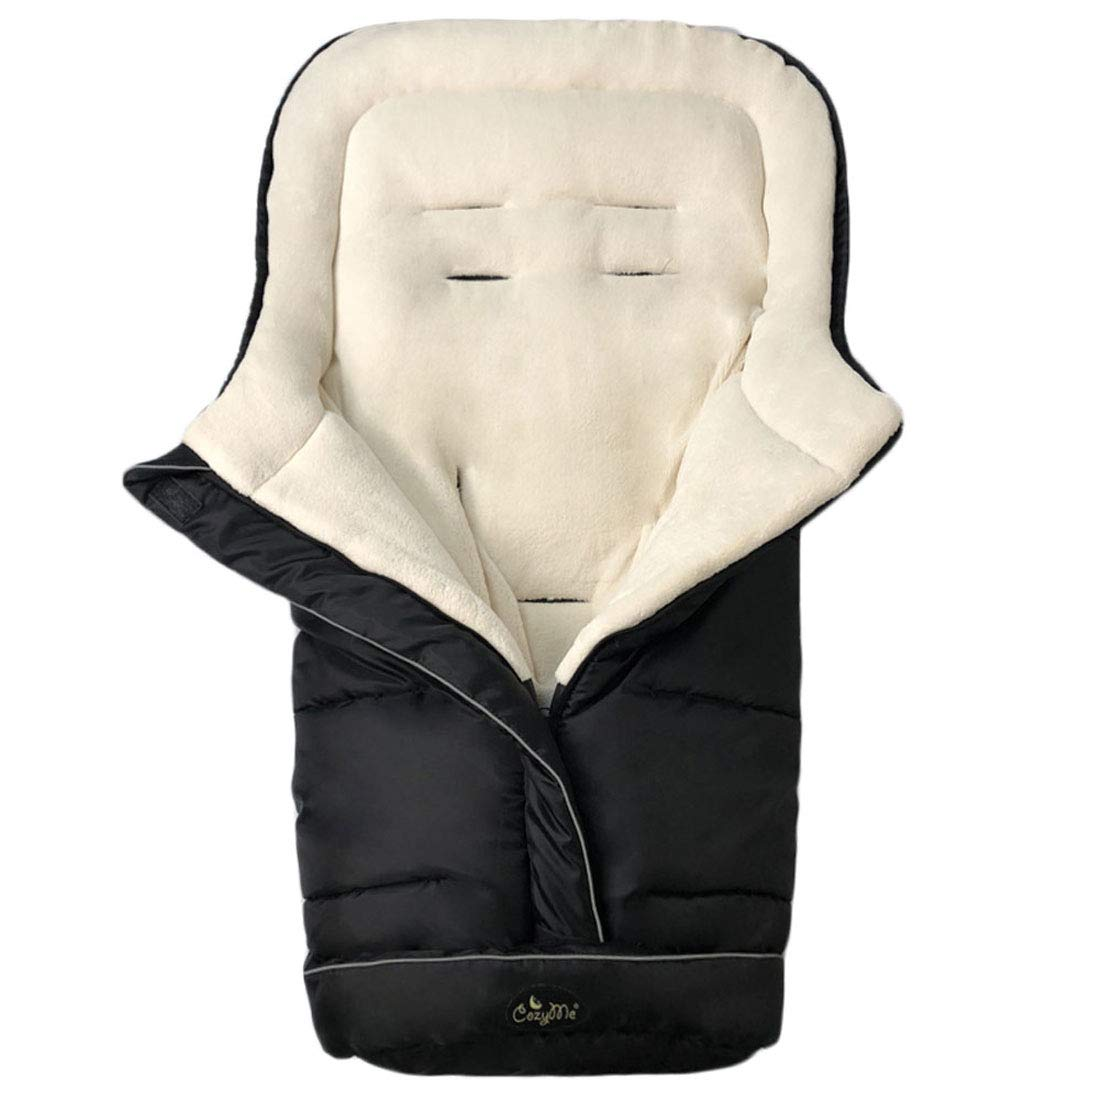 Practical Design Makes Our Toddler Stroller Bunting Bag Outstanding Cozy Baby Sleeping Bag Adaptable for Most Style Strollers,Comfortable Warm Lining